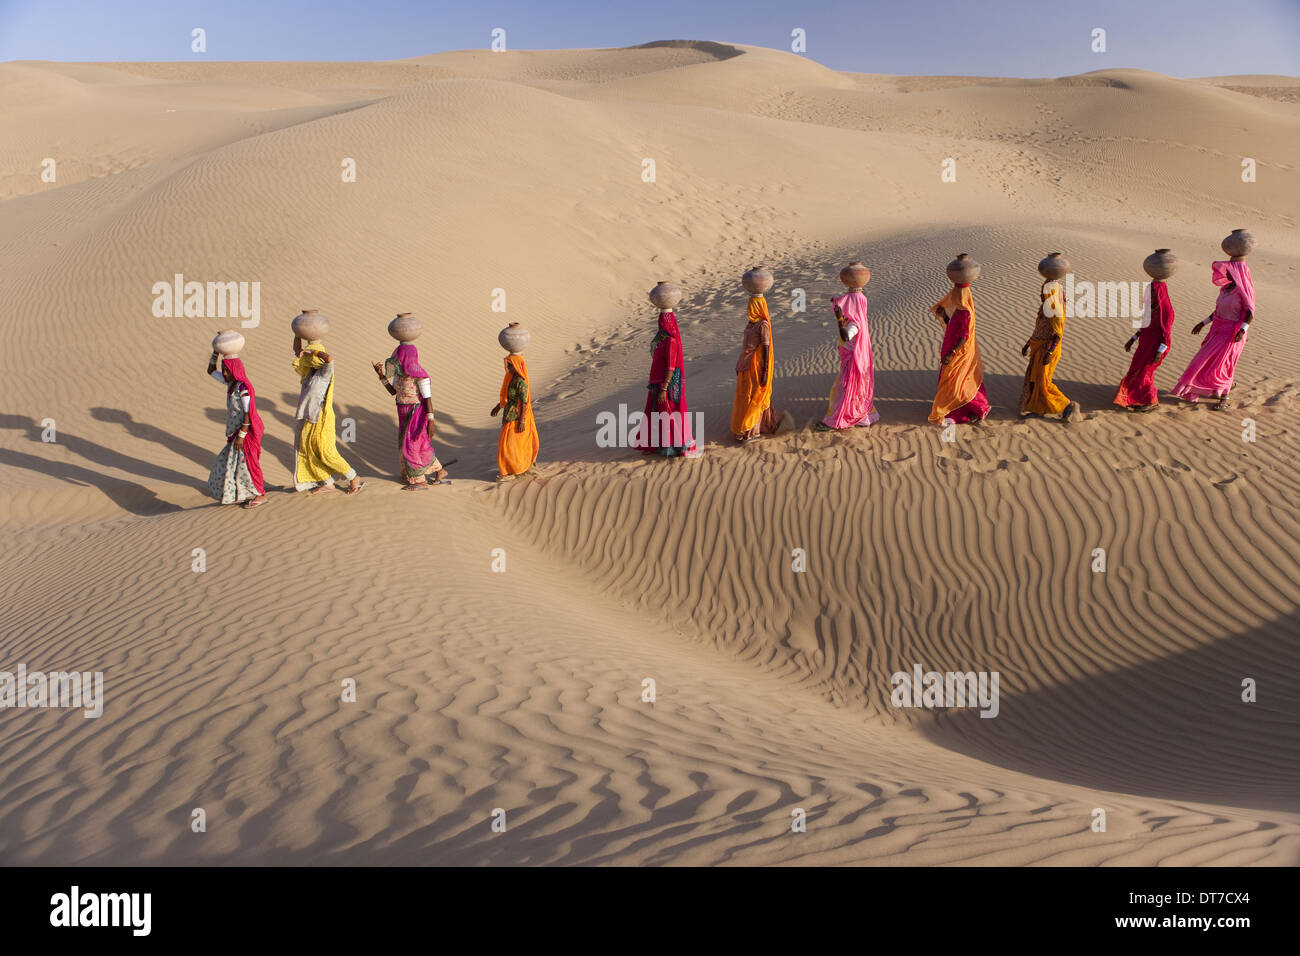 Rajasthan India Thar Desert Trekking up the side of a sand dunewomen carrying large water pots balanced on their heads - Stock Image